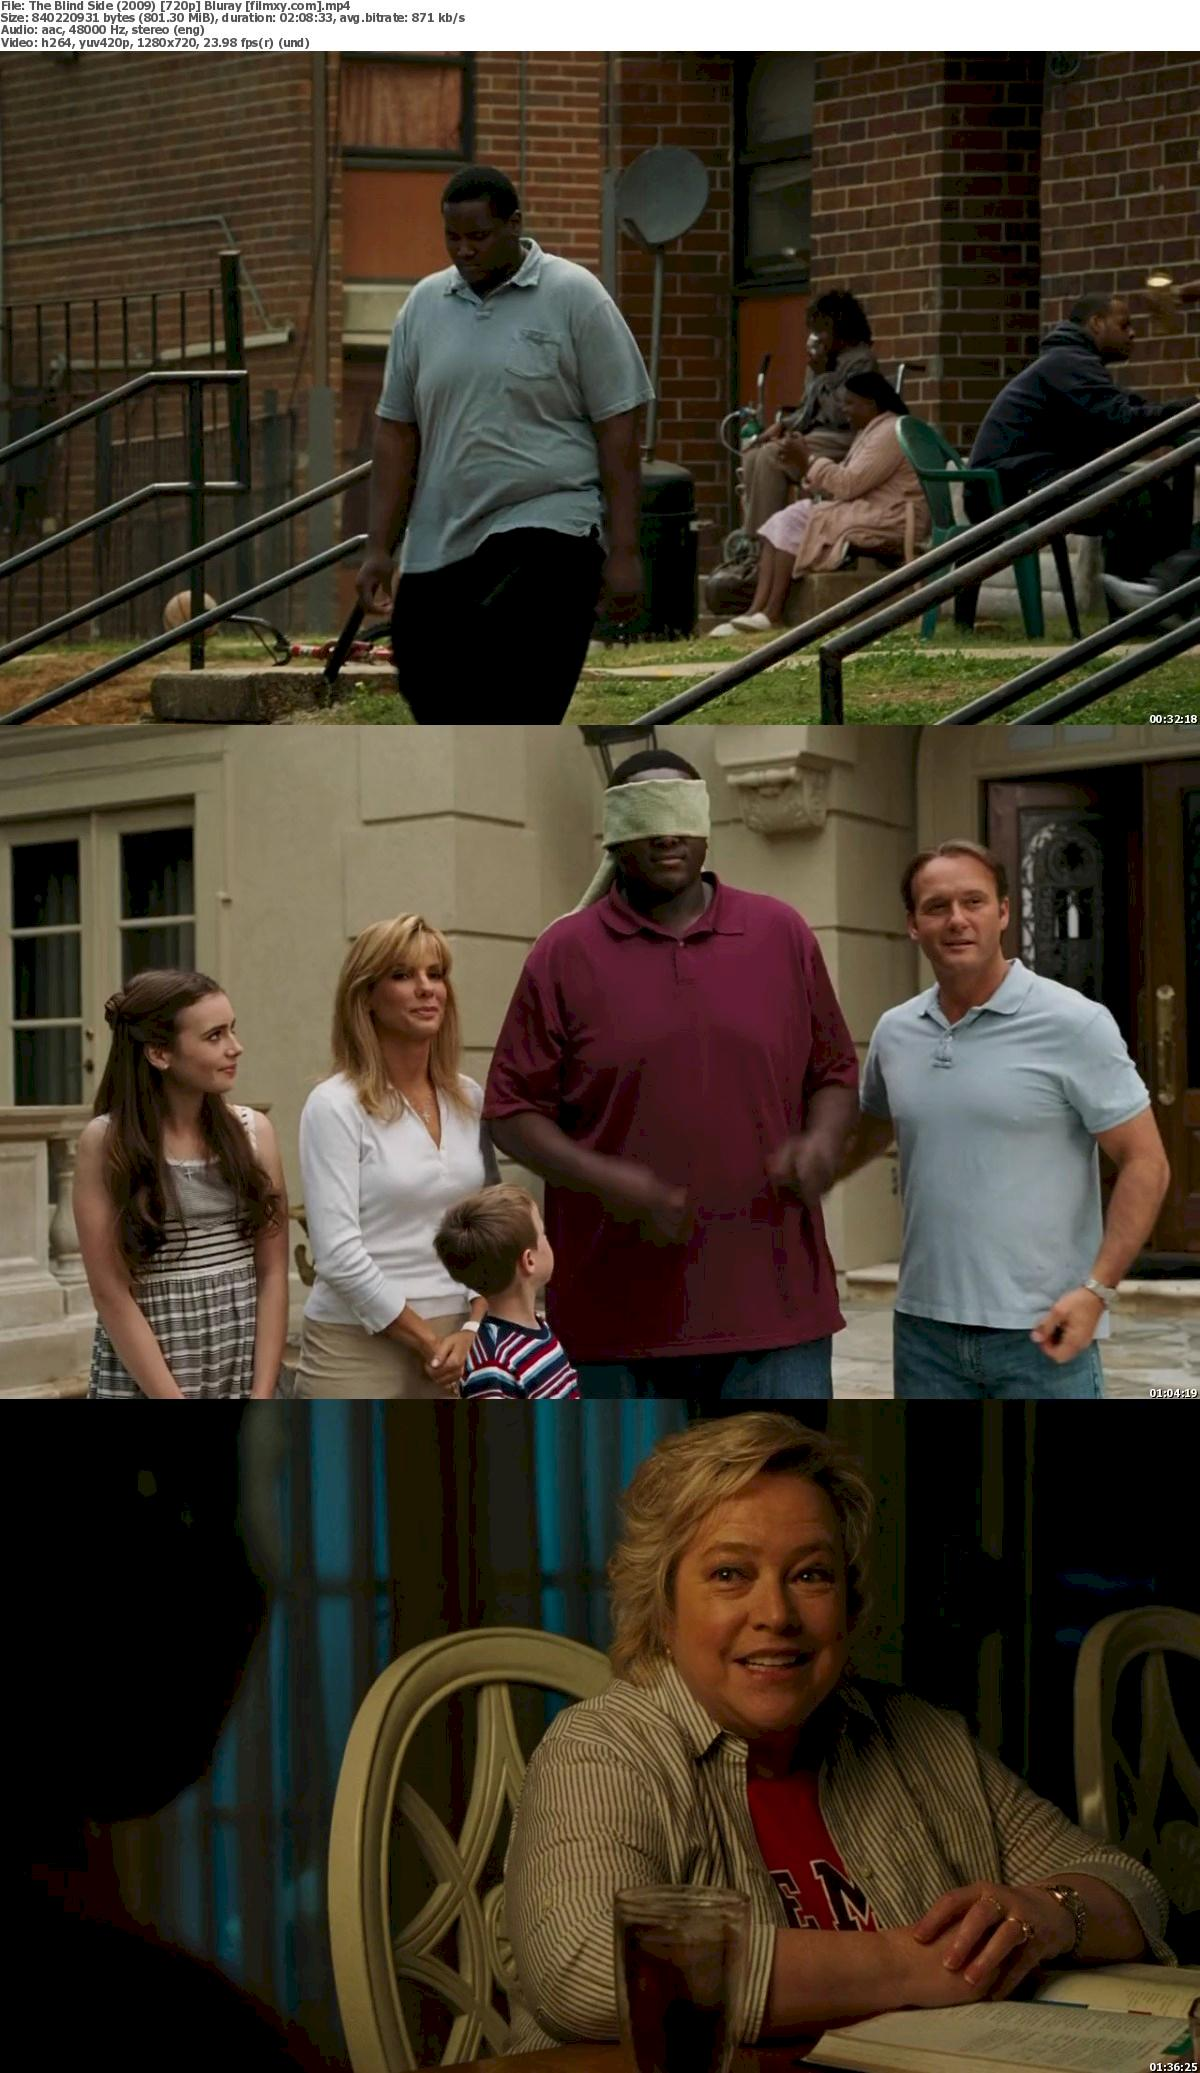 The Blind Side (2009) 720p & 1080p Bluray Free Download 720p Screenshot